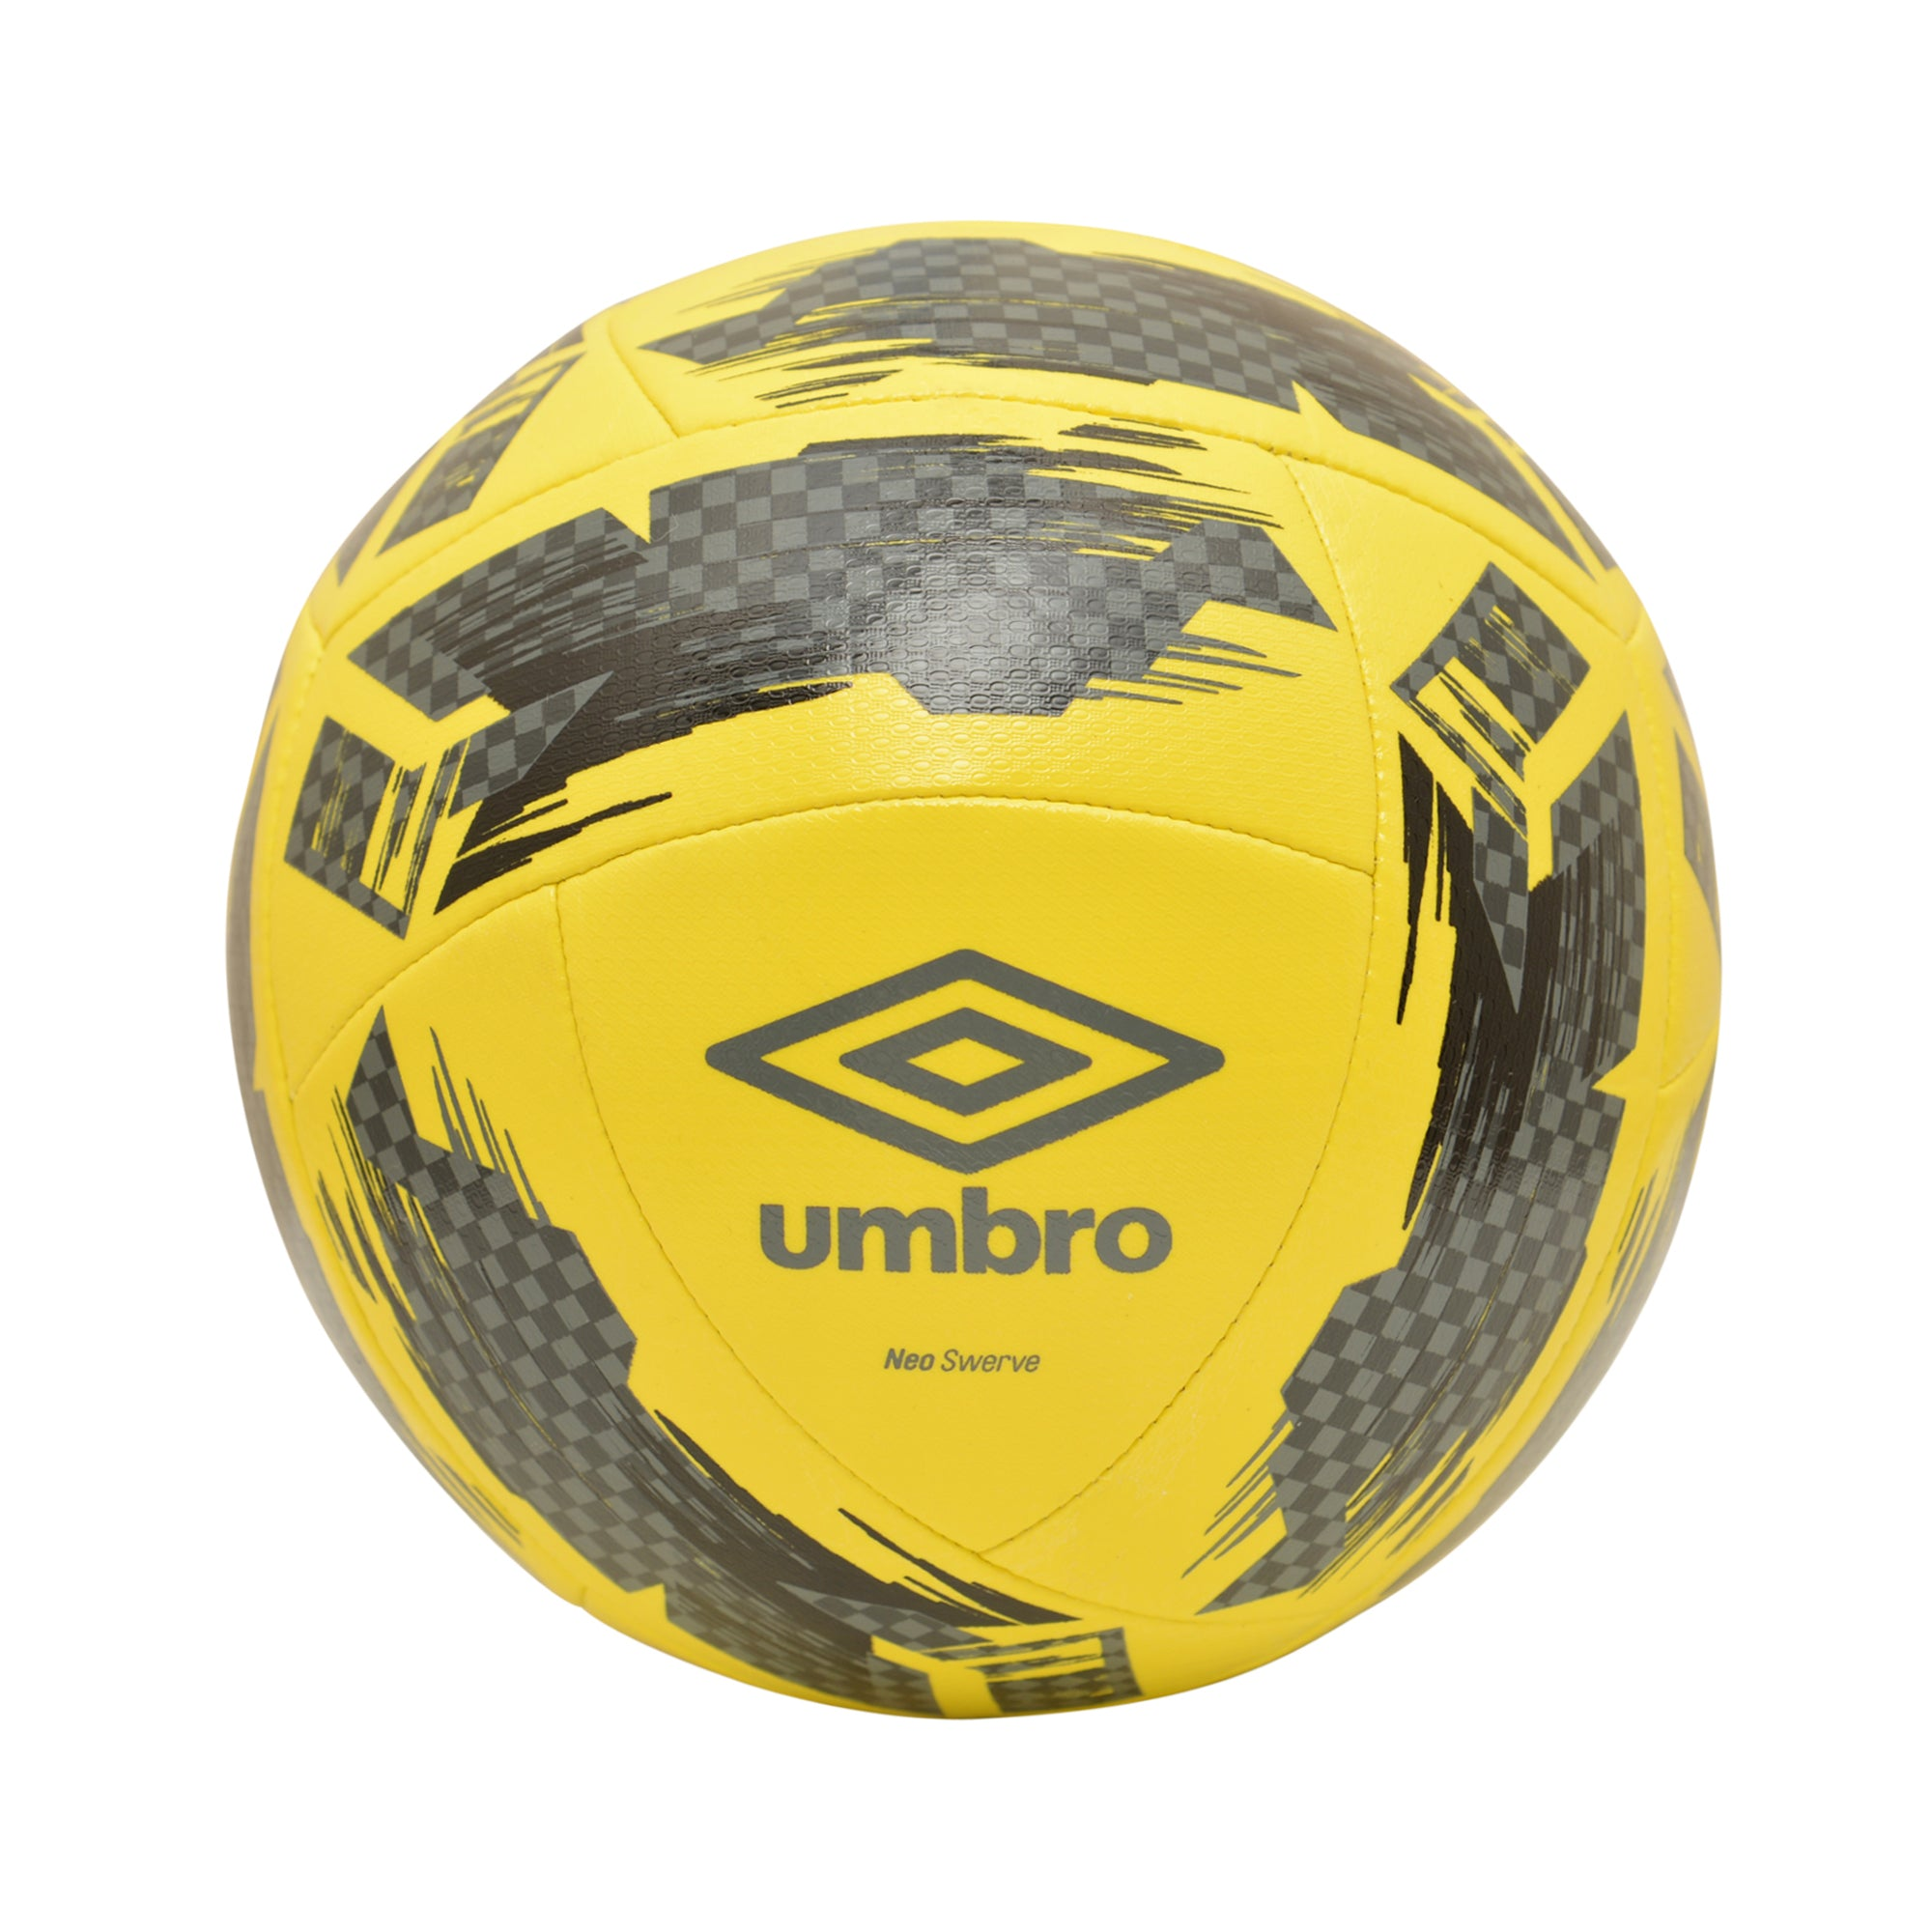 Umbro Neo Swerve - Yellow Black